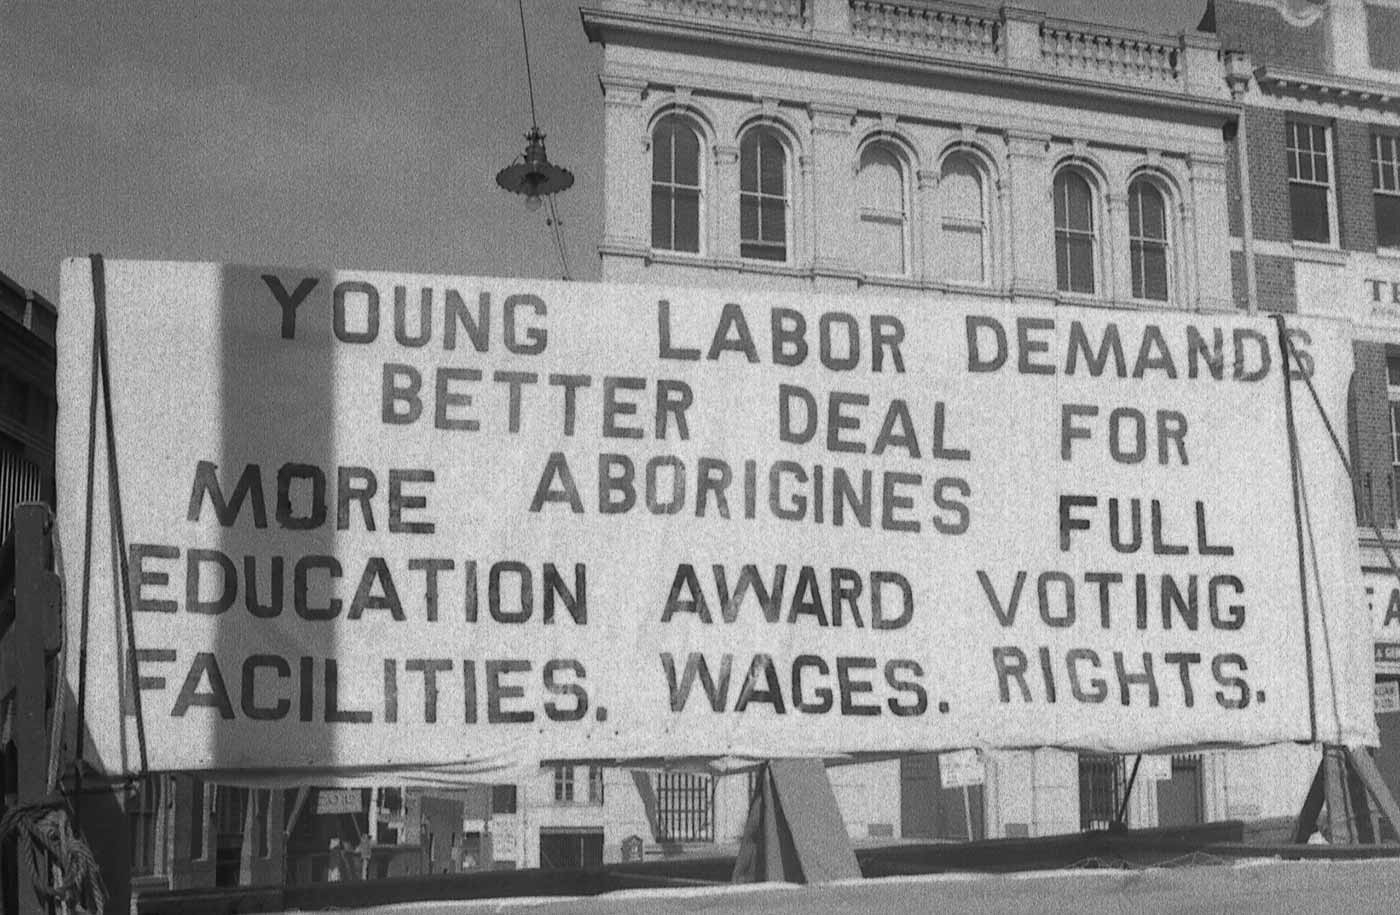 1962: Indigenous Australians granted the right to vote (National Museum of Australia, n.d.)